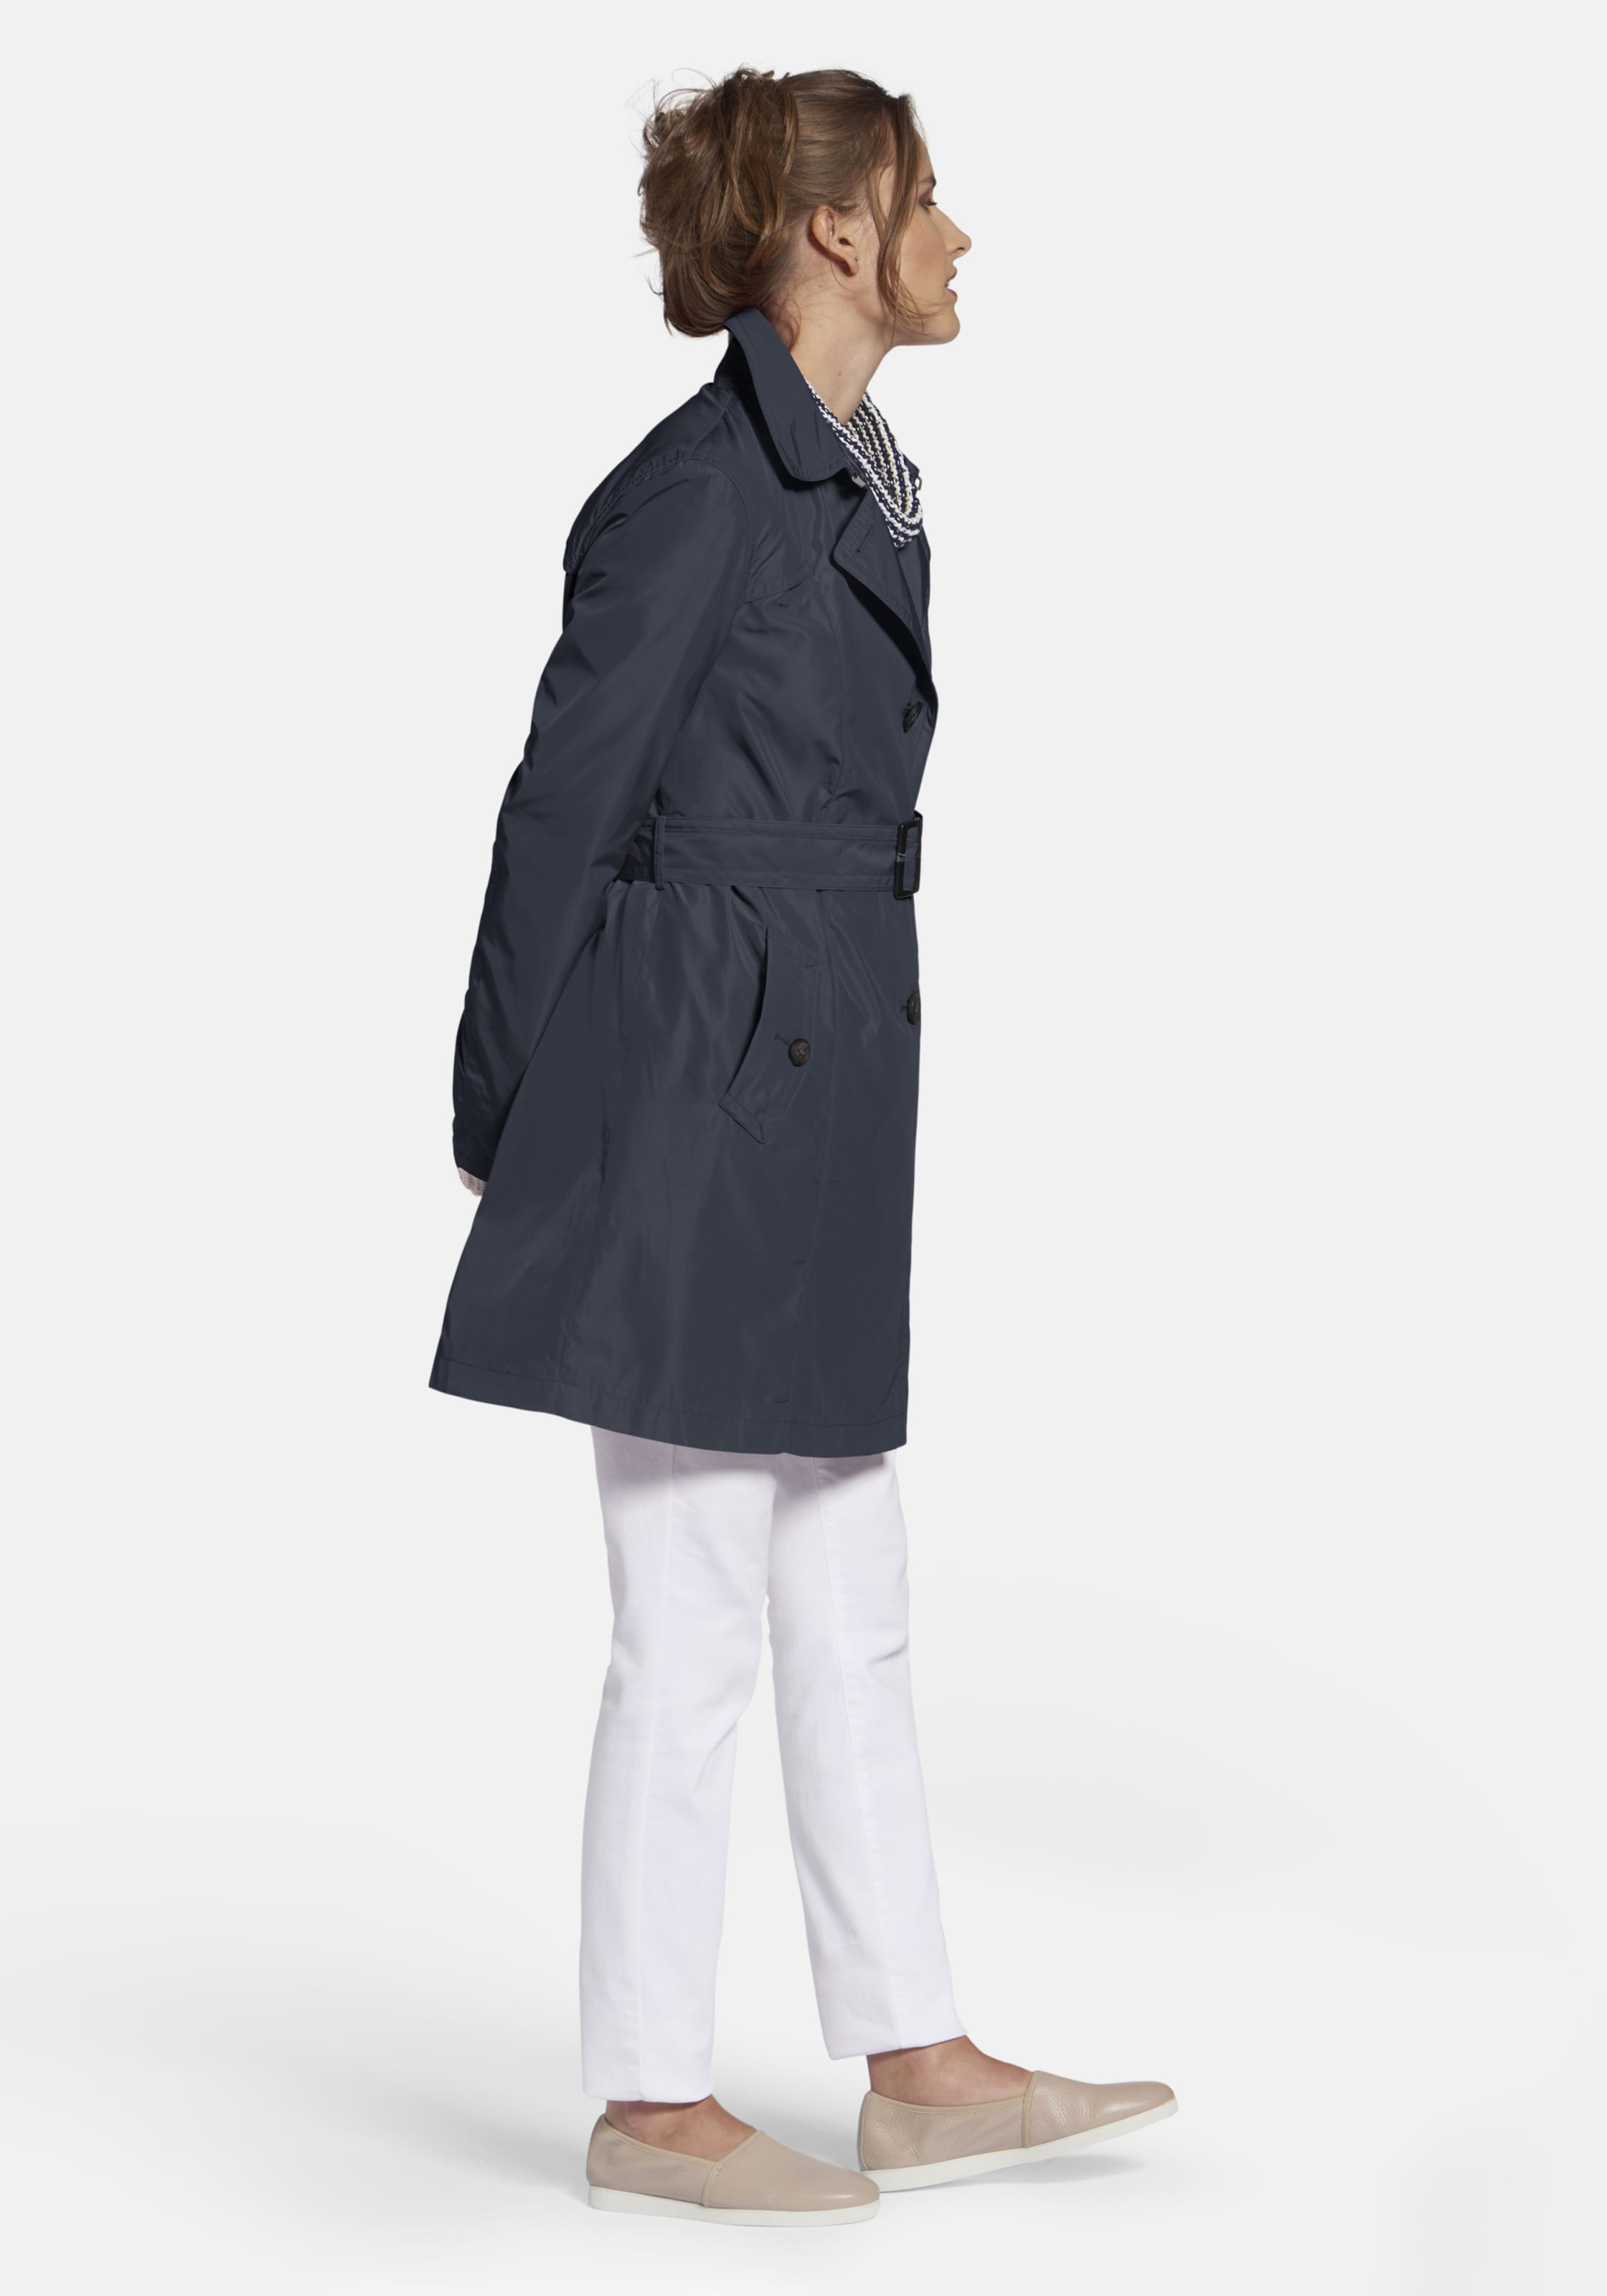 Marine Basler In 'authentischer Trenchcoat Every day' 8kNwnO0PX